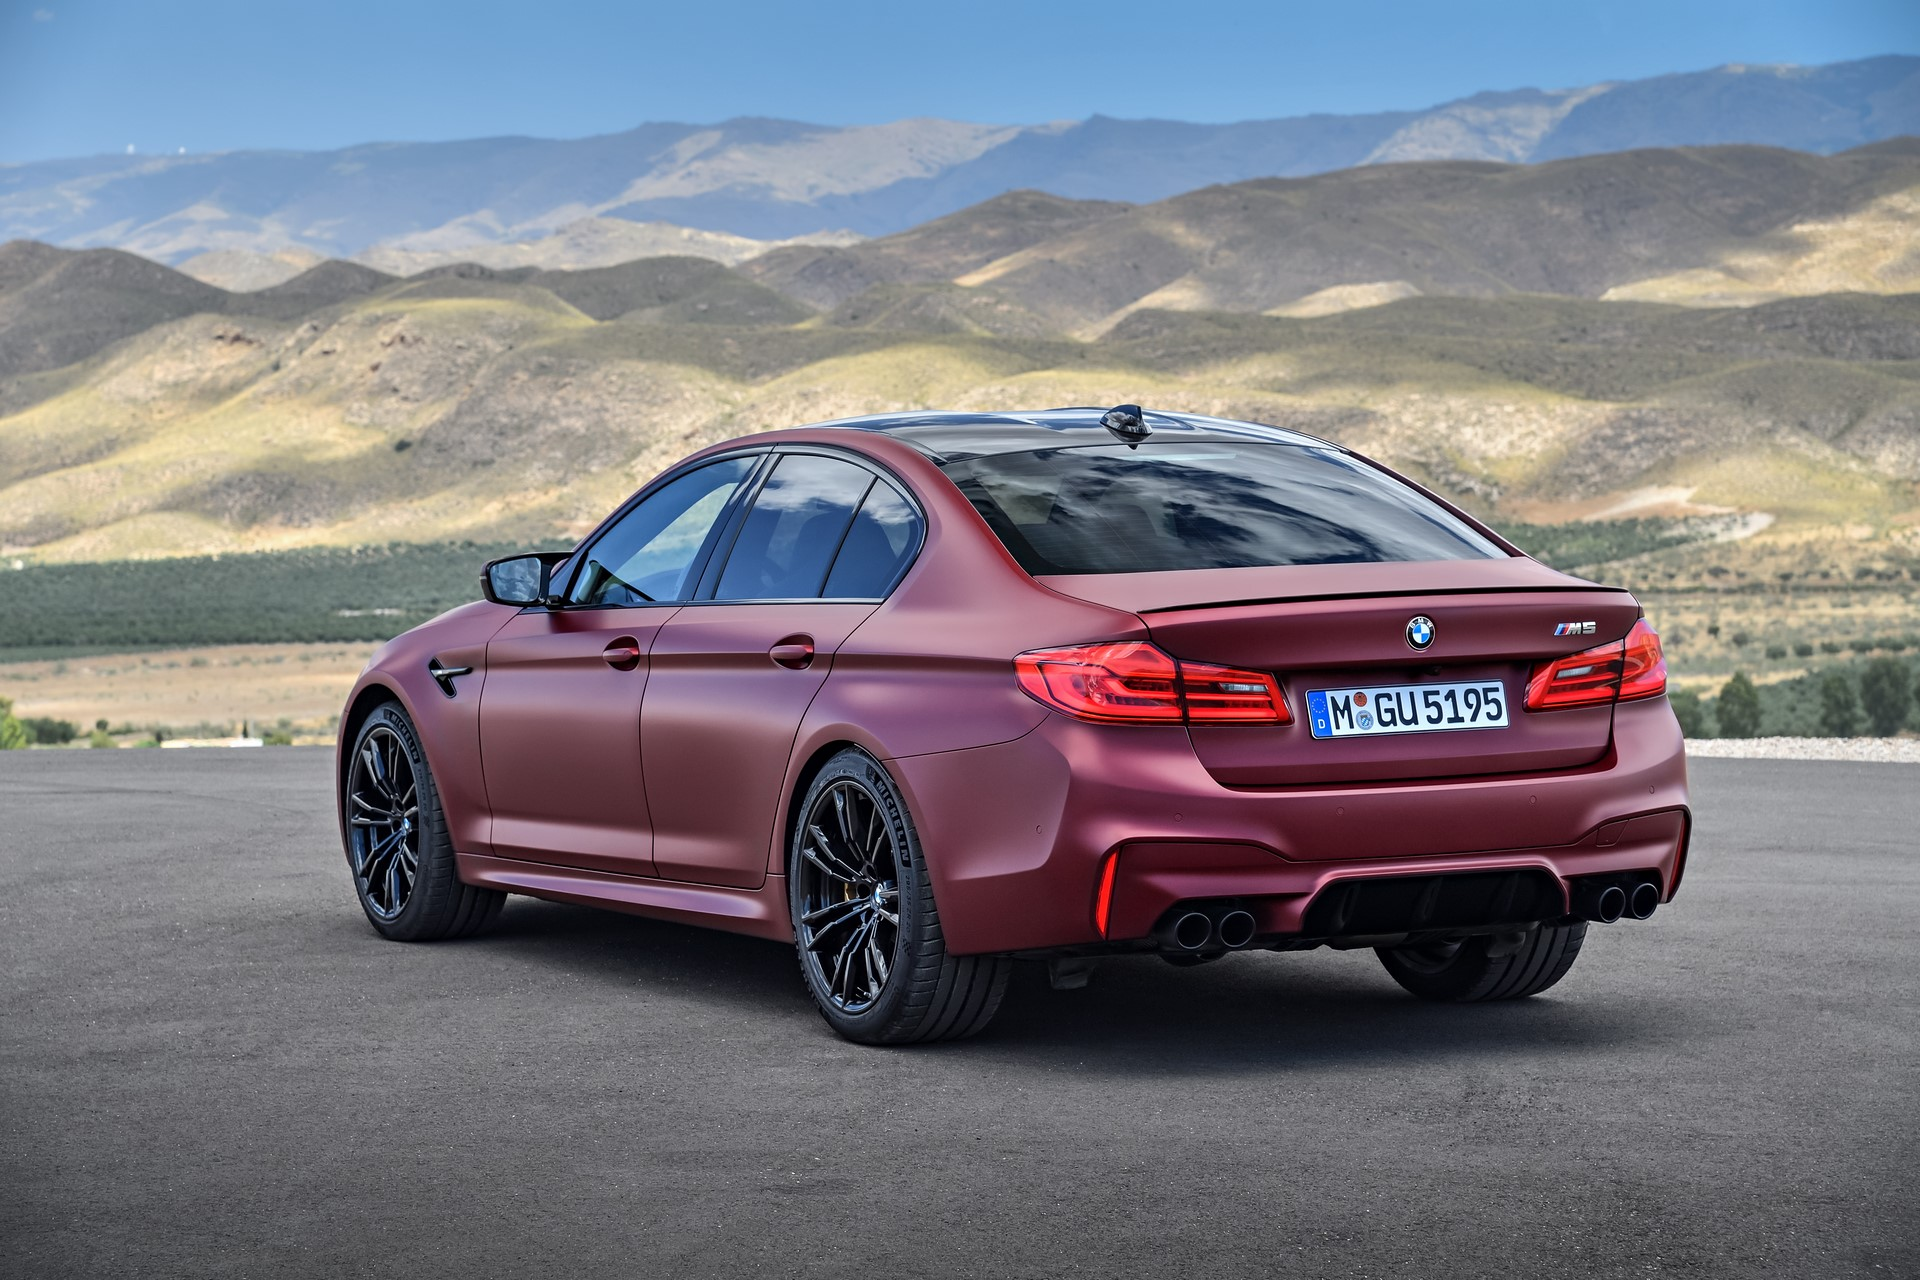 BMW M5 First Edition 2018 (6)